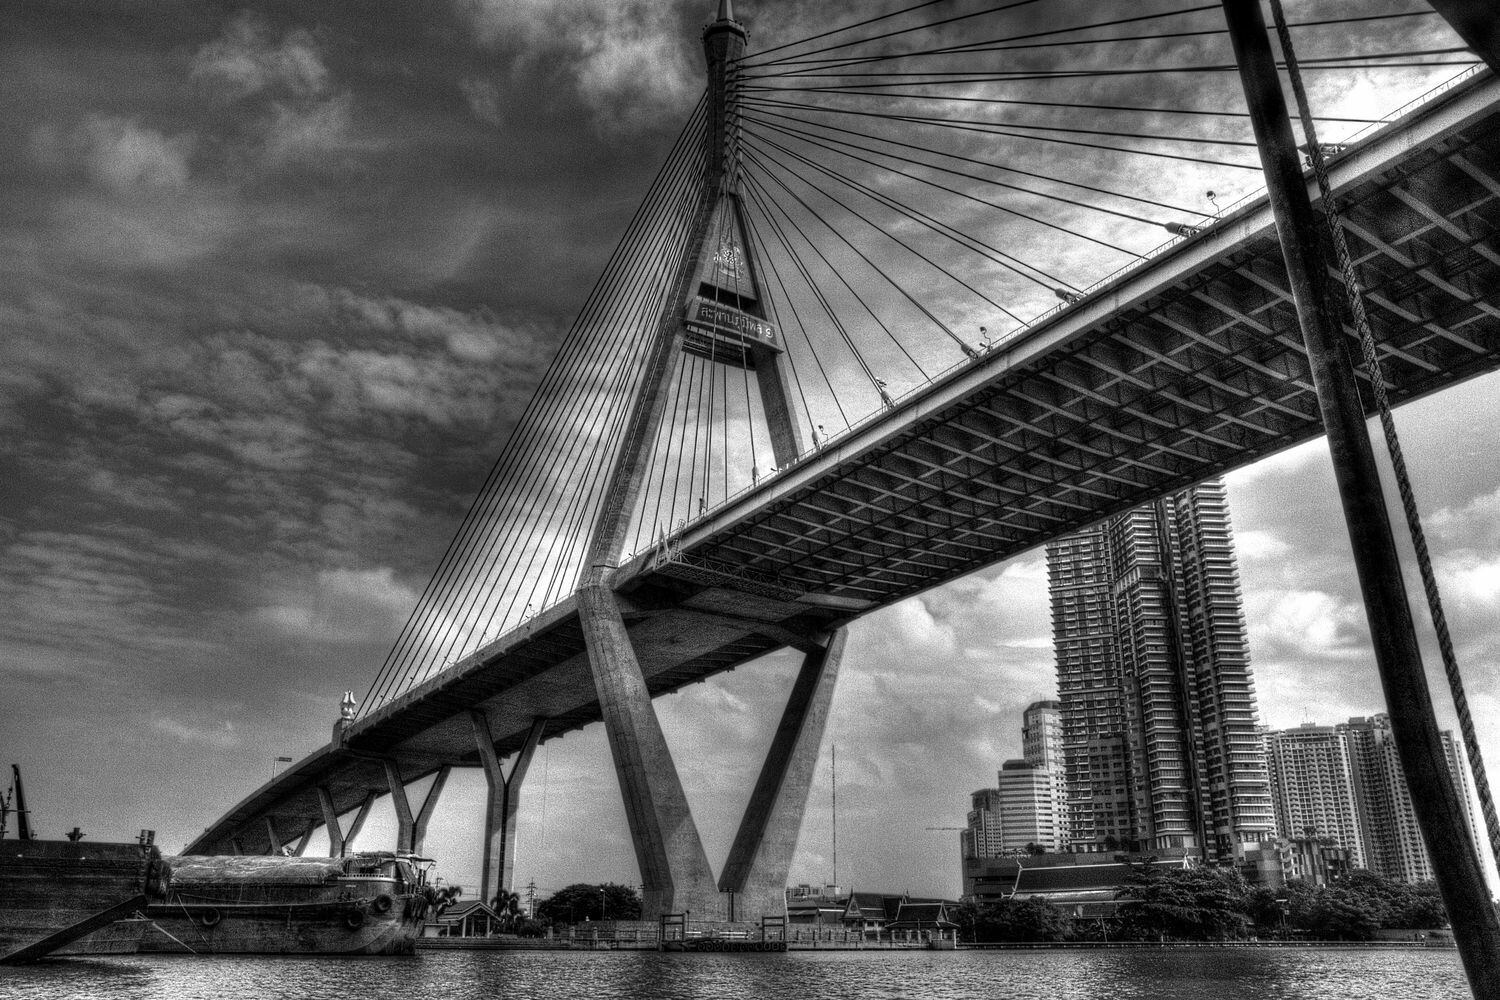 BRIDGE (BANGKOK CHAO PHRAYA RIVER) 02